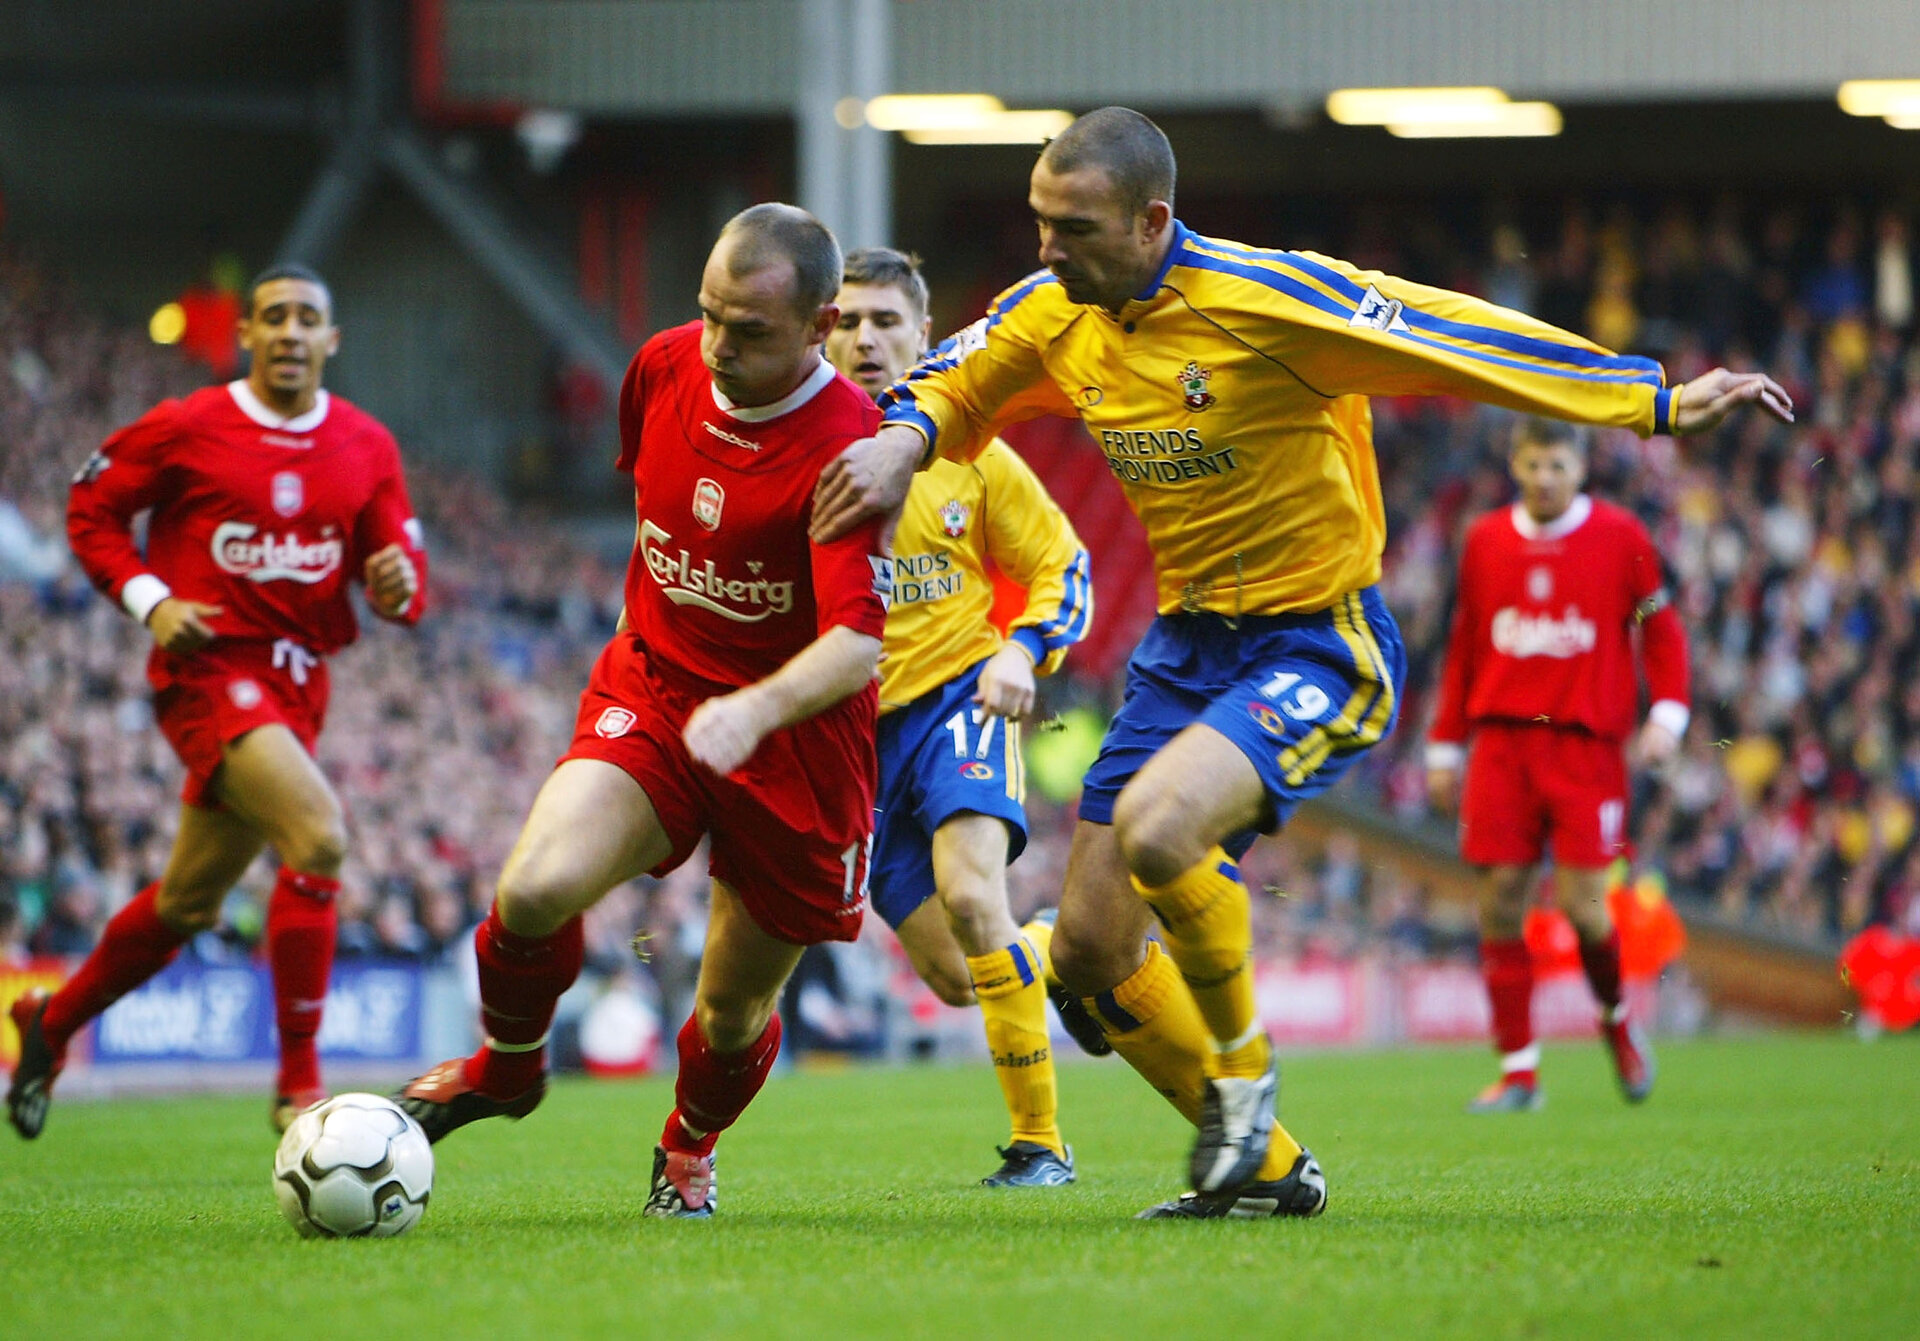 LIVERPOOL, ENGLAND - DECEMBER 13:  Danny Murphy of Liverpool holds off Paul Telfer of Southampton during the FA Barclaycard Premiership match between Liverpool and Southampton at Anfield on December 13, 2003 in Liverpool, England.  (Photo by Gary M.Prior/Getty Images)